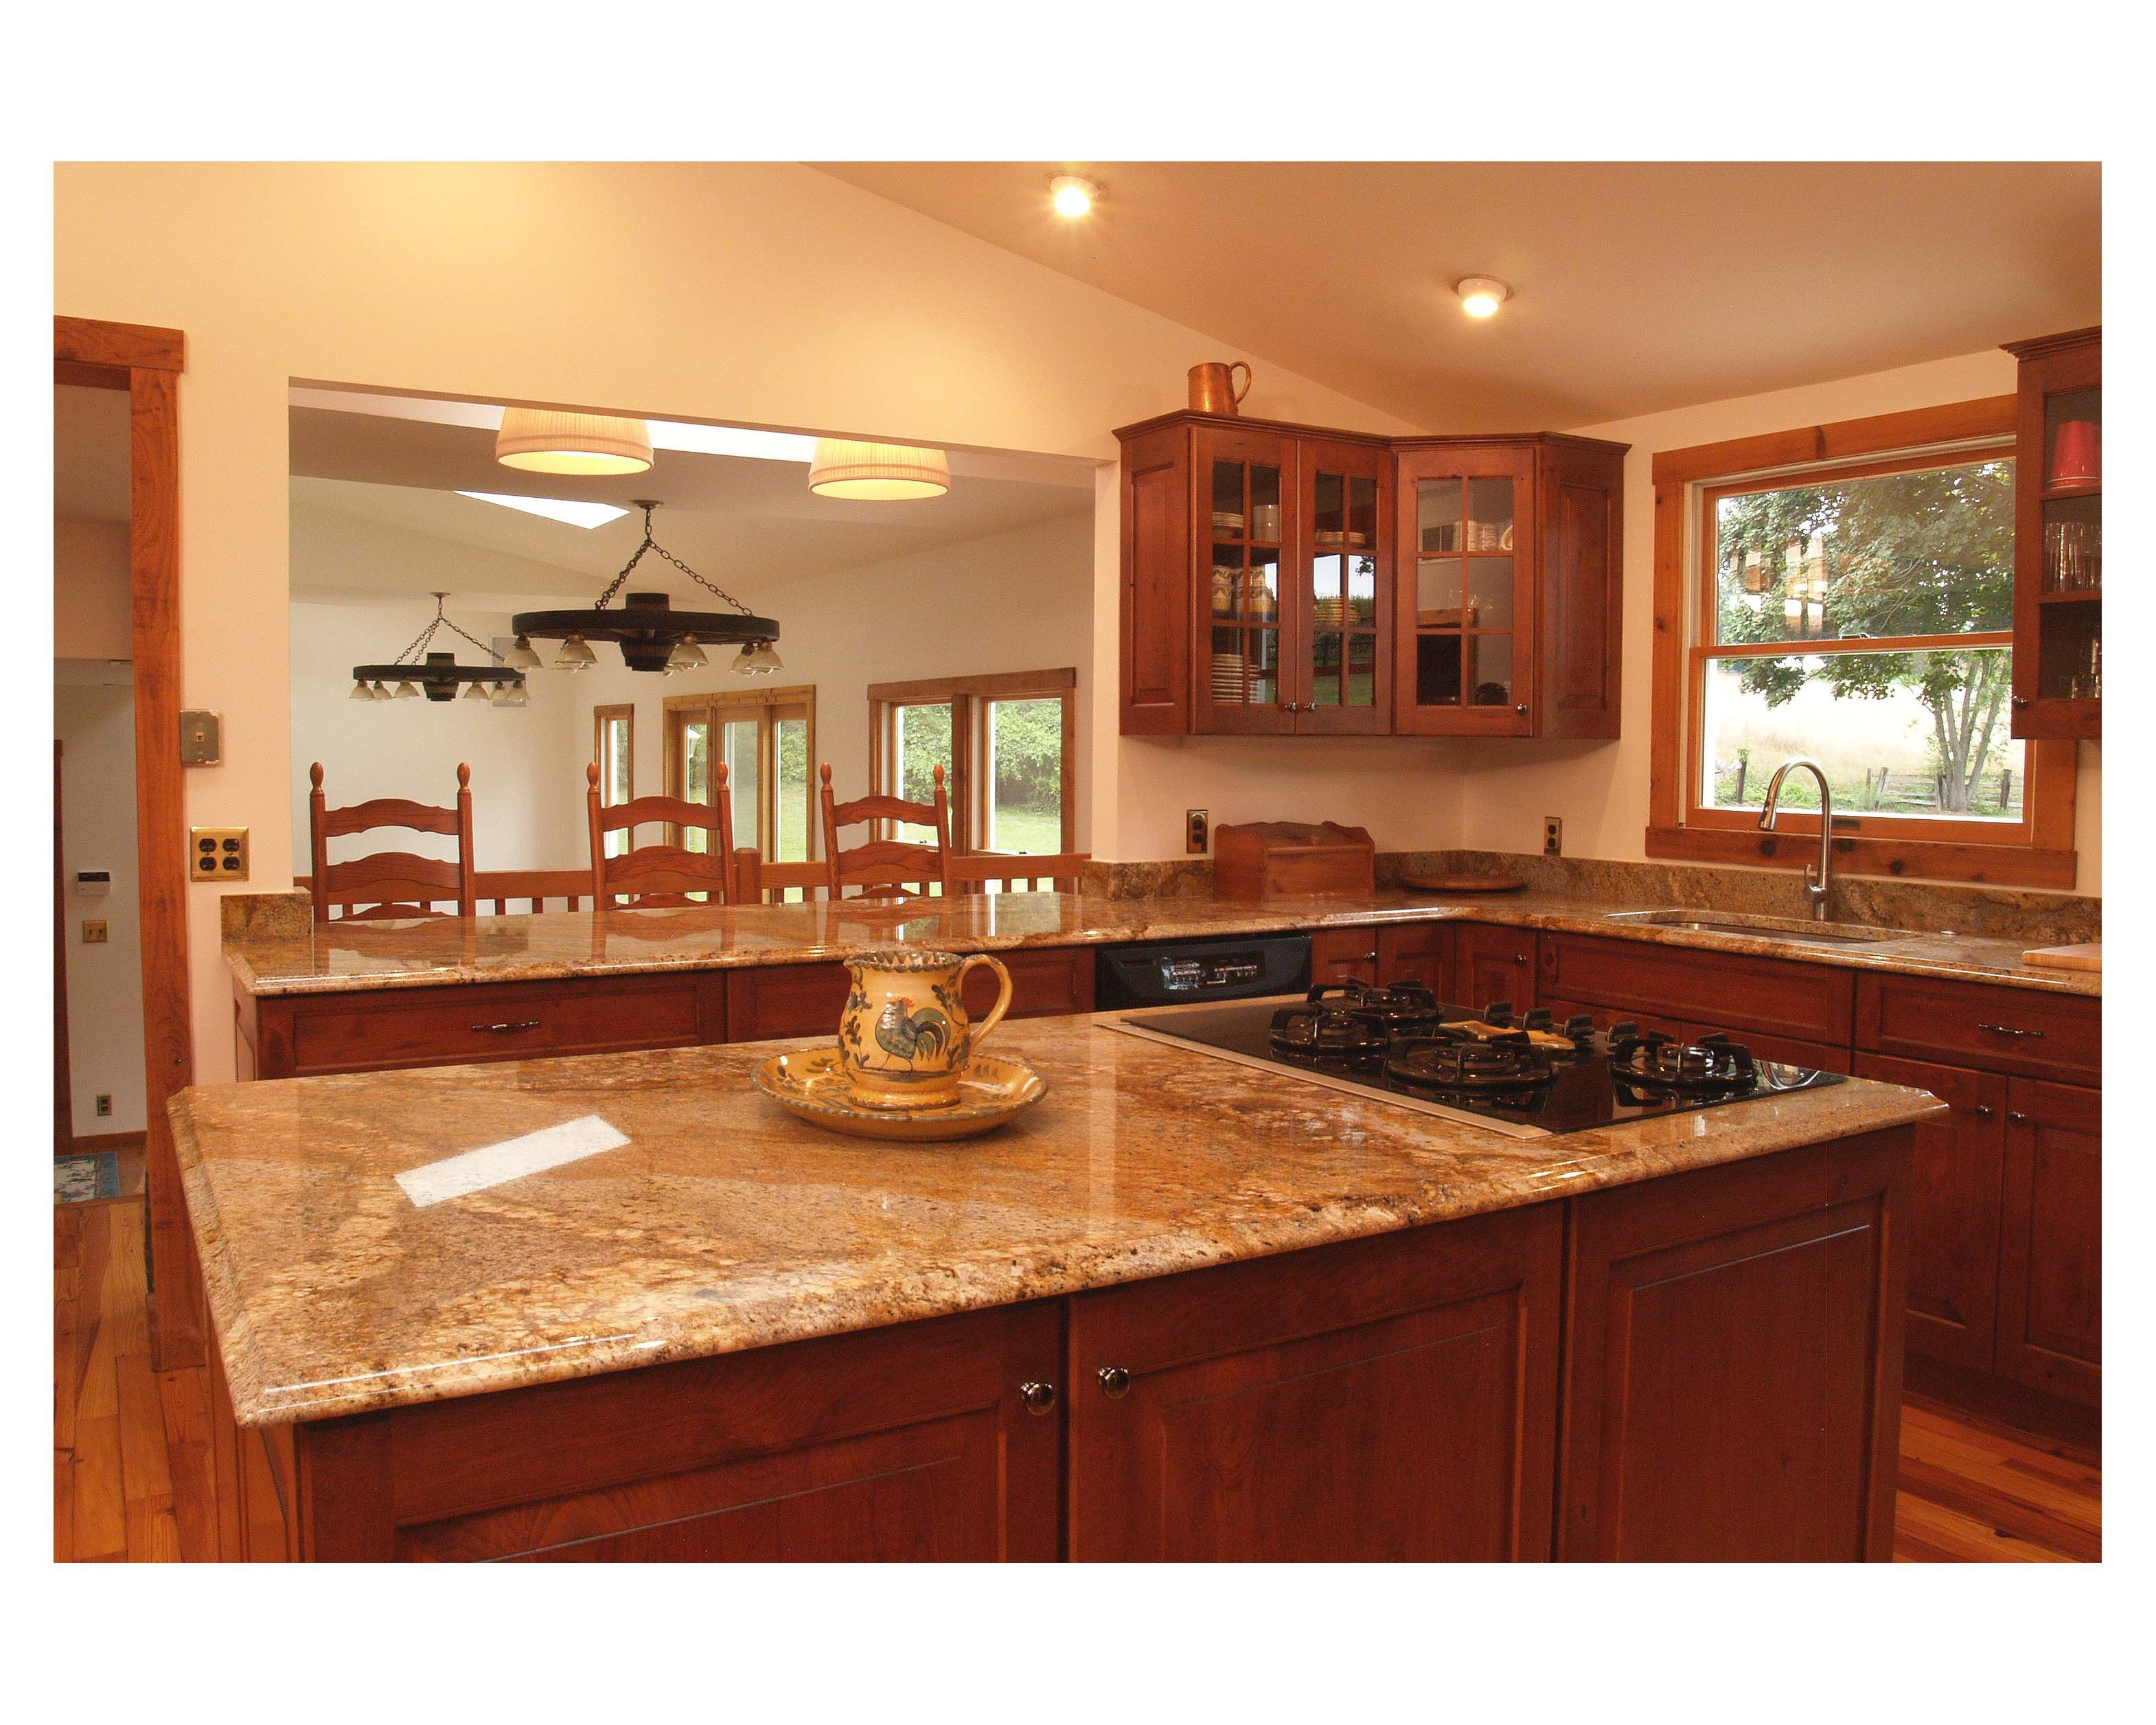 Kitchen Saver Cabinet Refacing Done Right Custom Kitchen Cabinets Refacing Kitchen Cabinets Kitchen